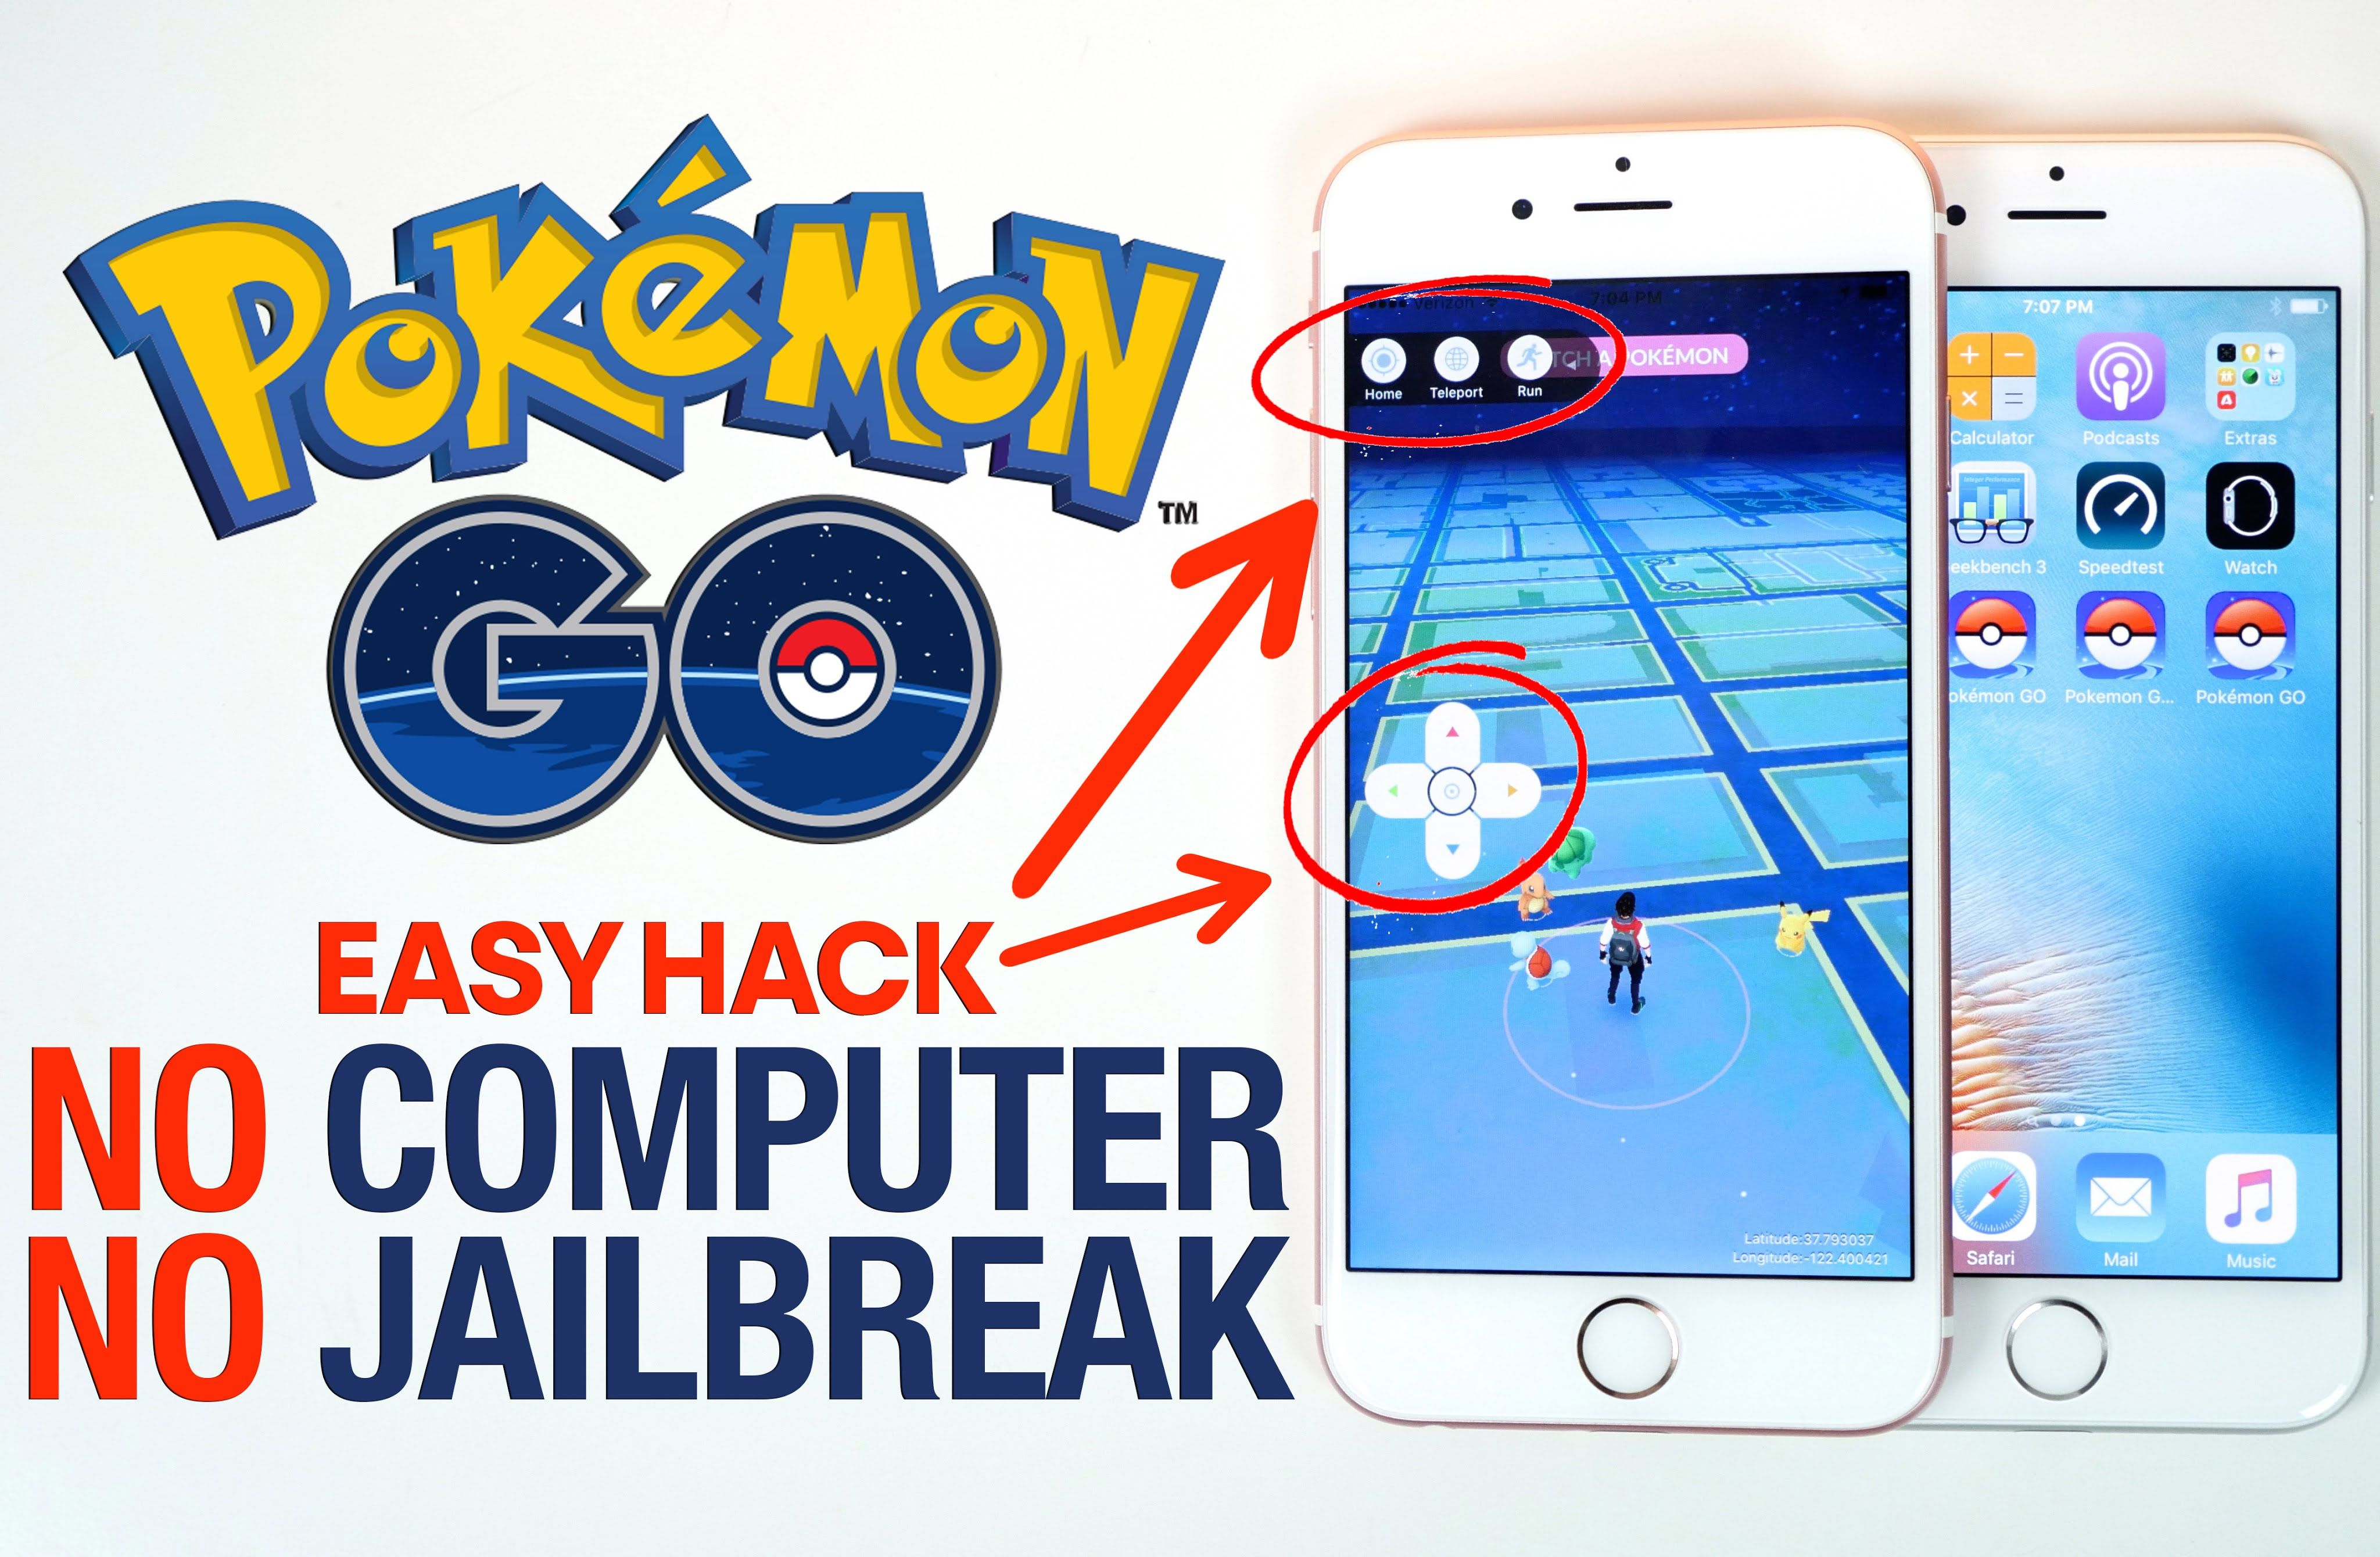 Pokemon Go Hack Tools No Verification Unlimited Pokecoins